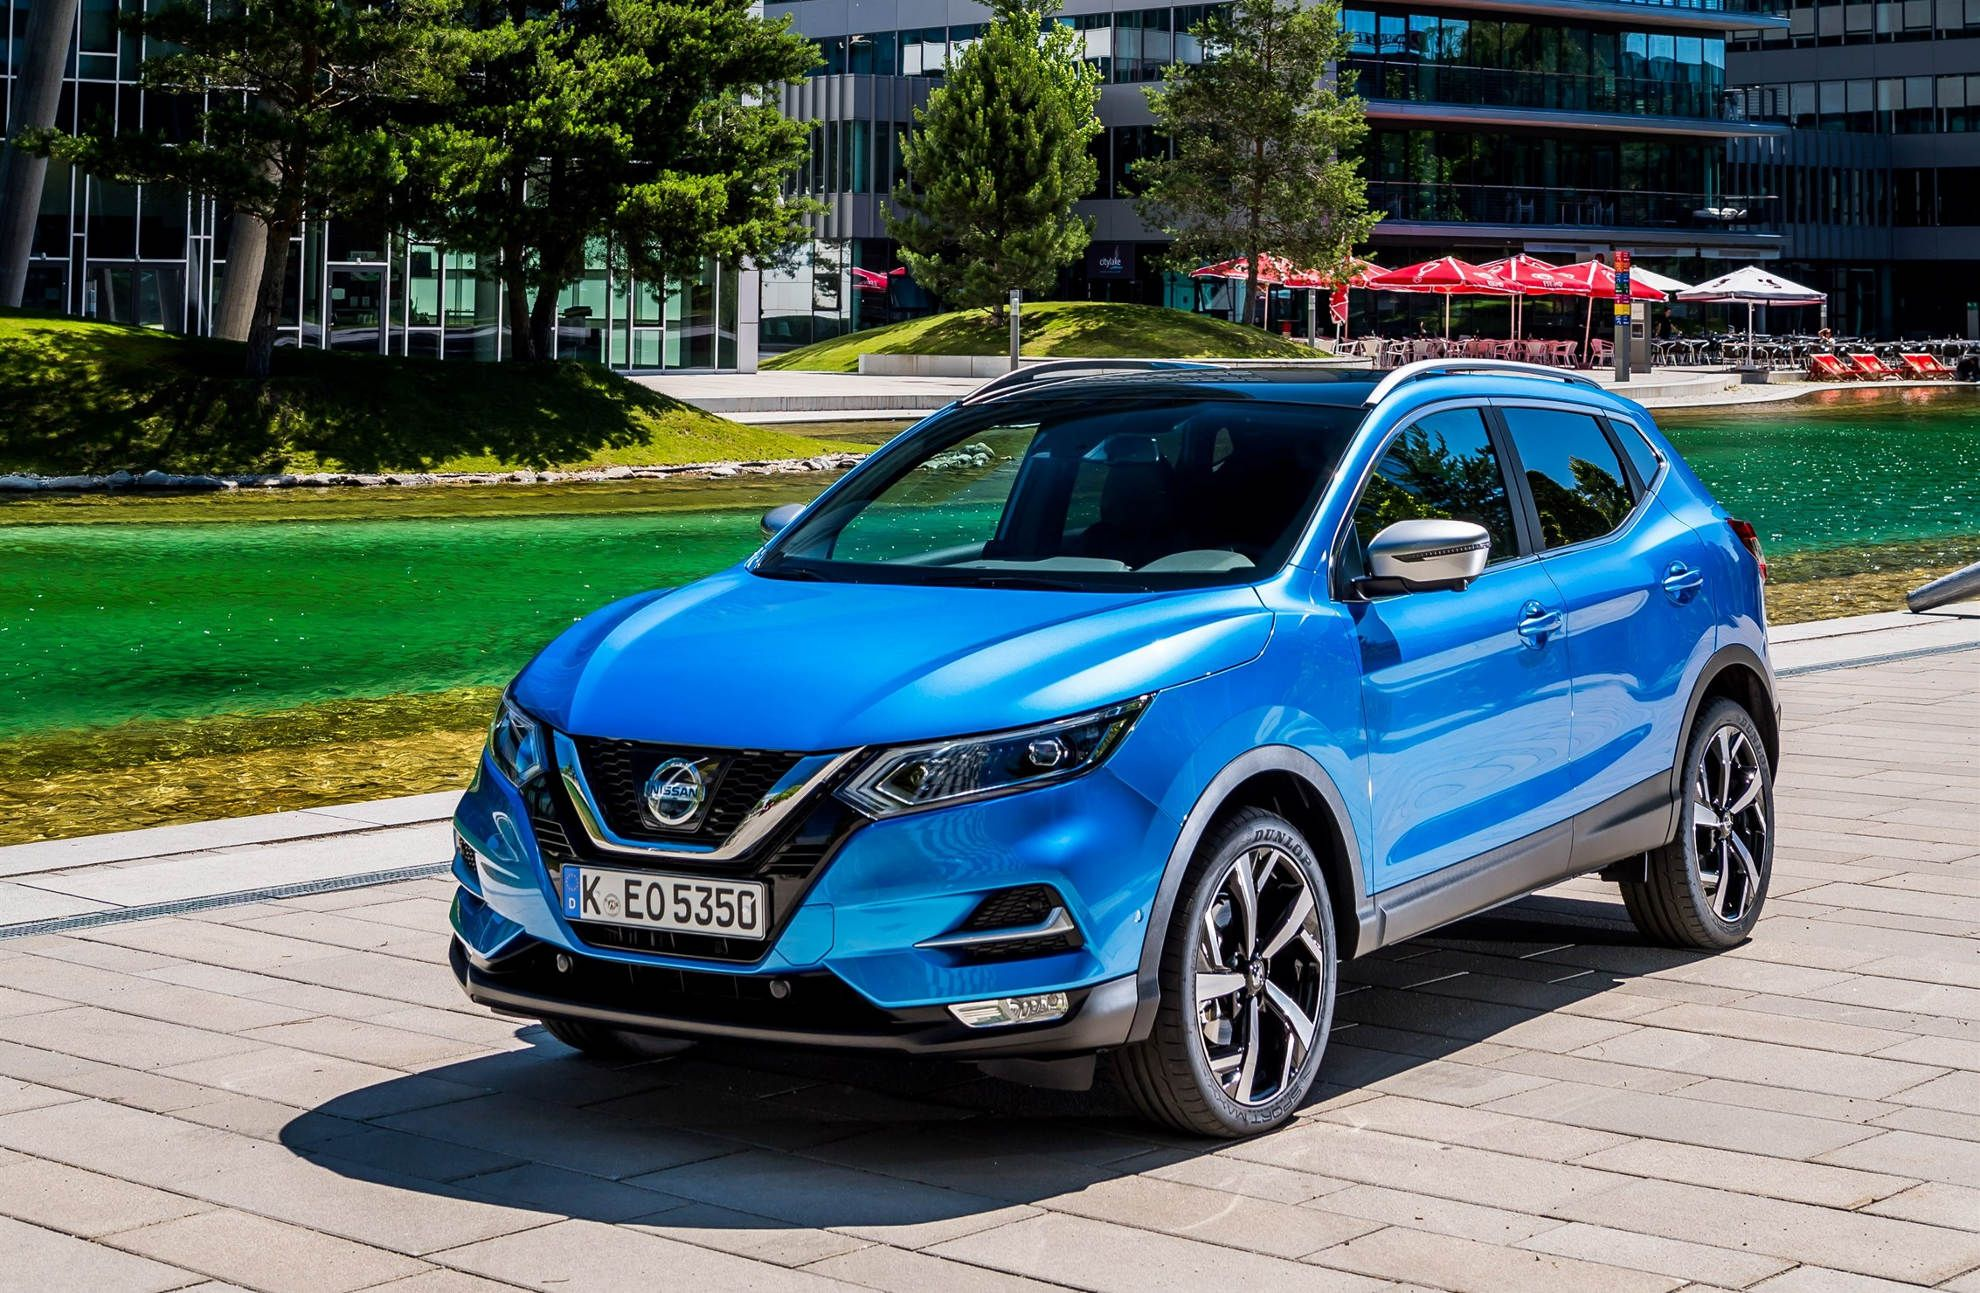 nissan qashqai facelift mj 2018 frontperspektive alle suv modelle pinterest nissan qashqai. Black Bedroom Furniture Sets. Home Design Ideas